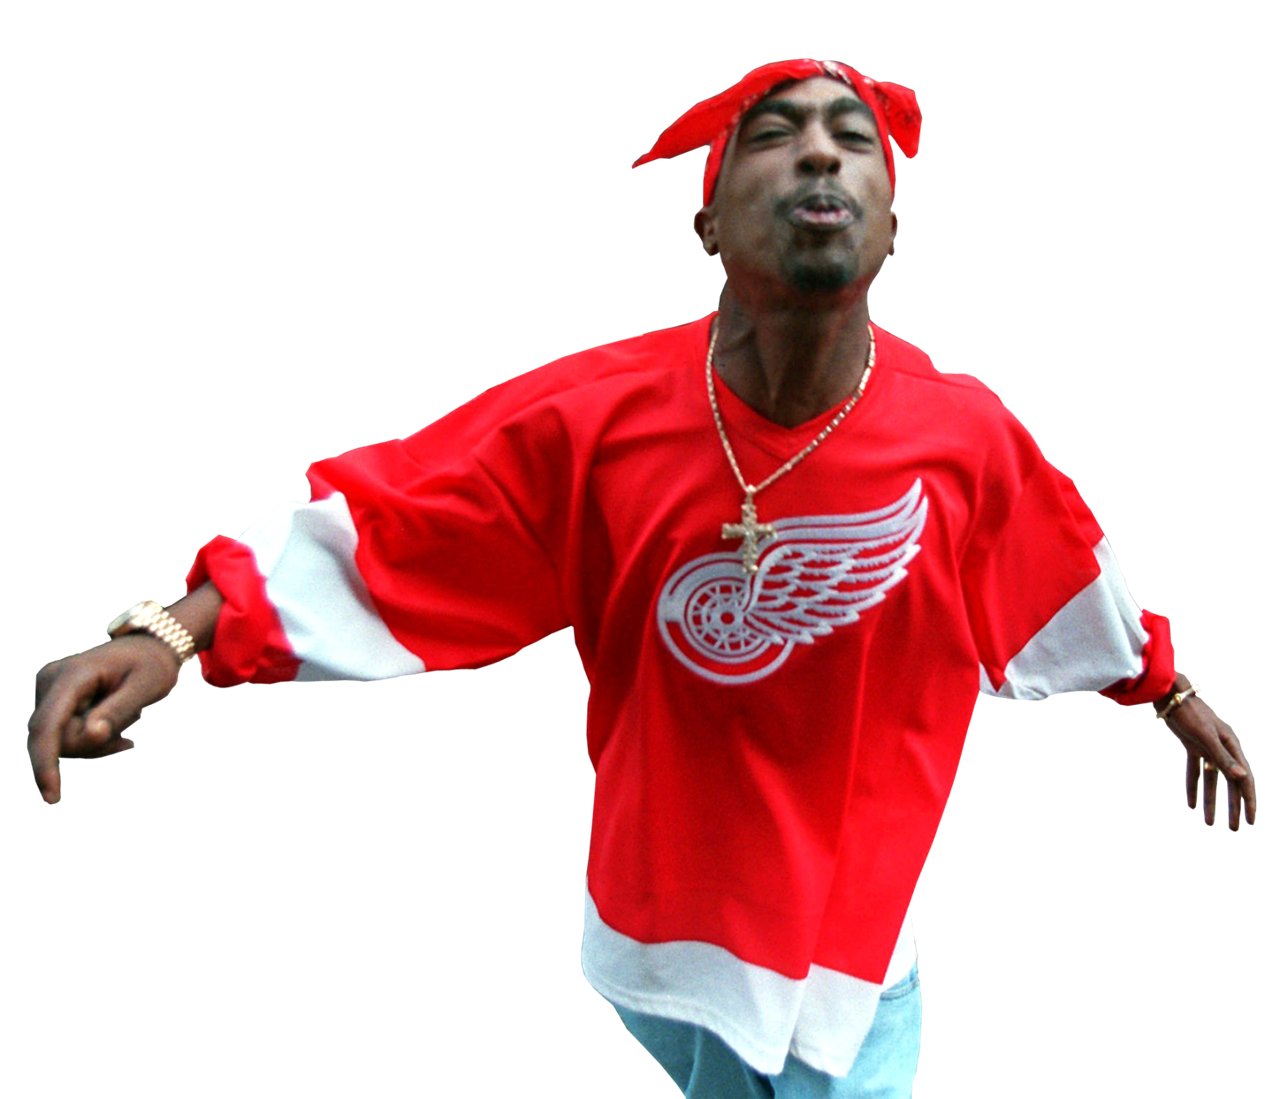 2pac transparent full body. Tupac shakur png background